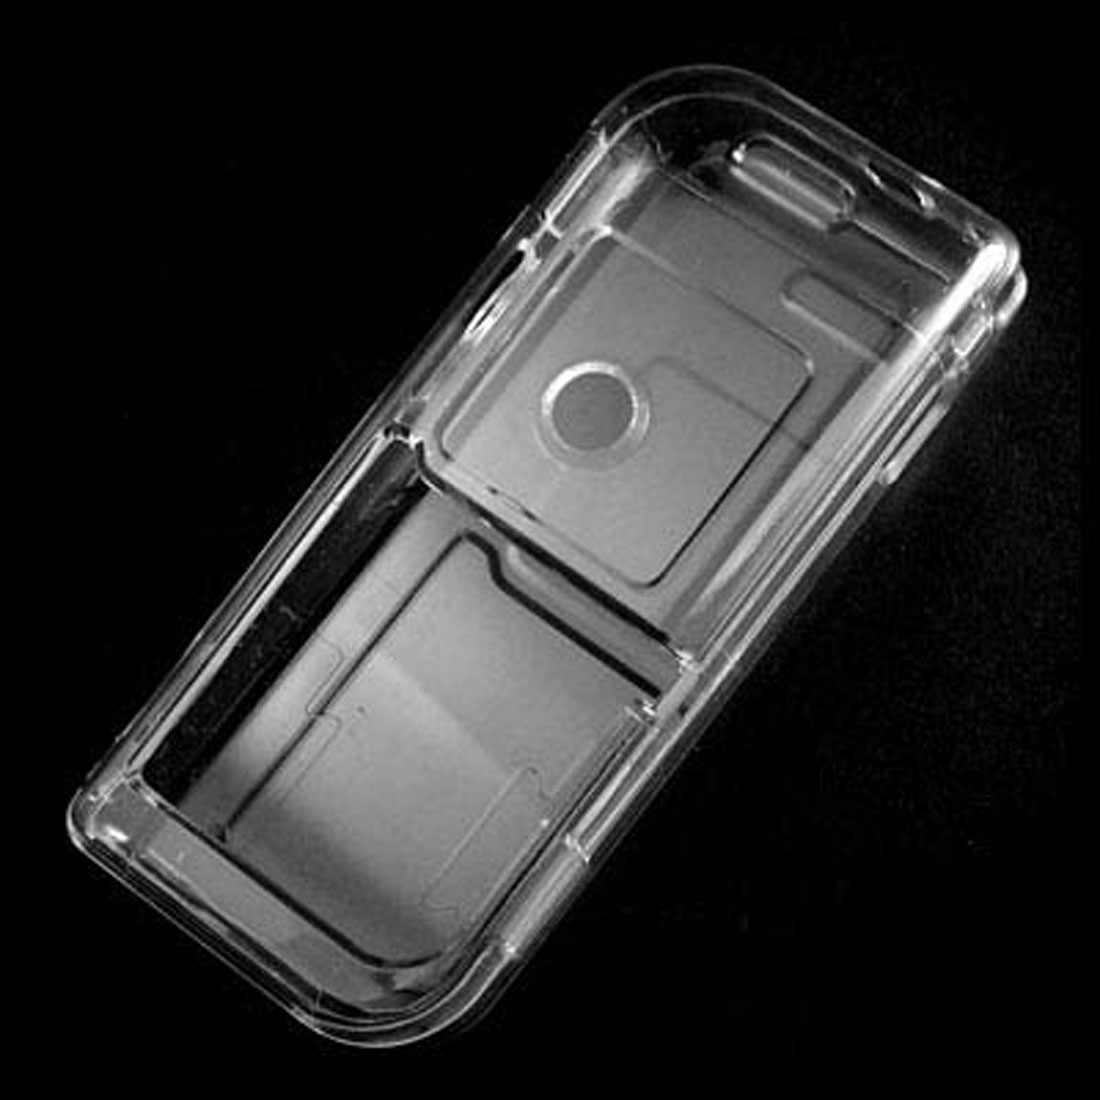 Clear Plastic Case for Nokia 7260